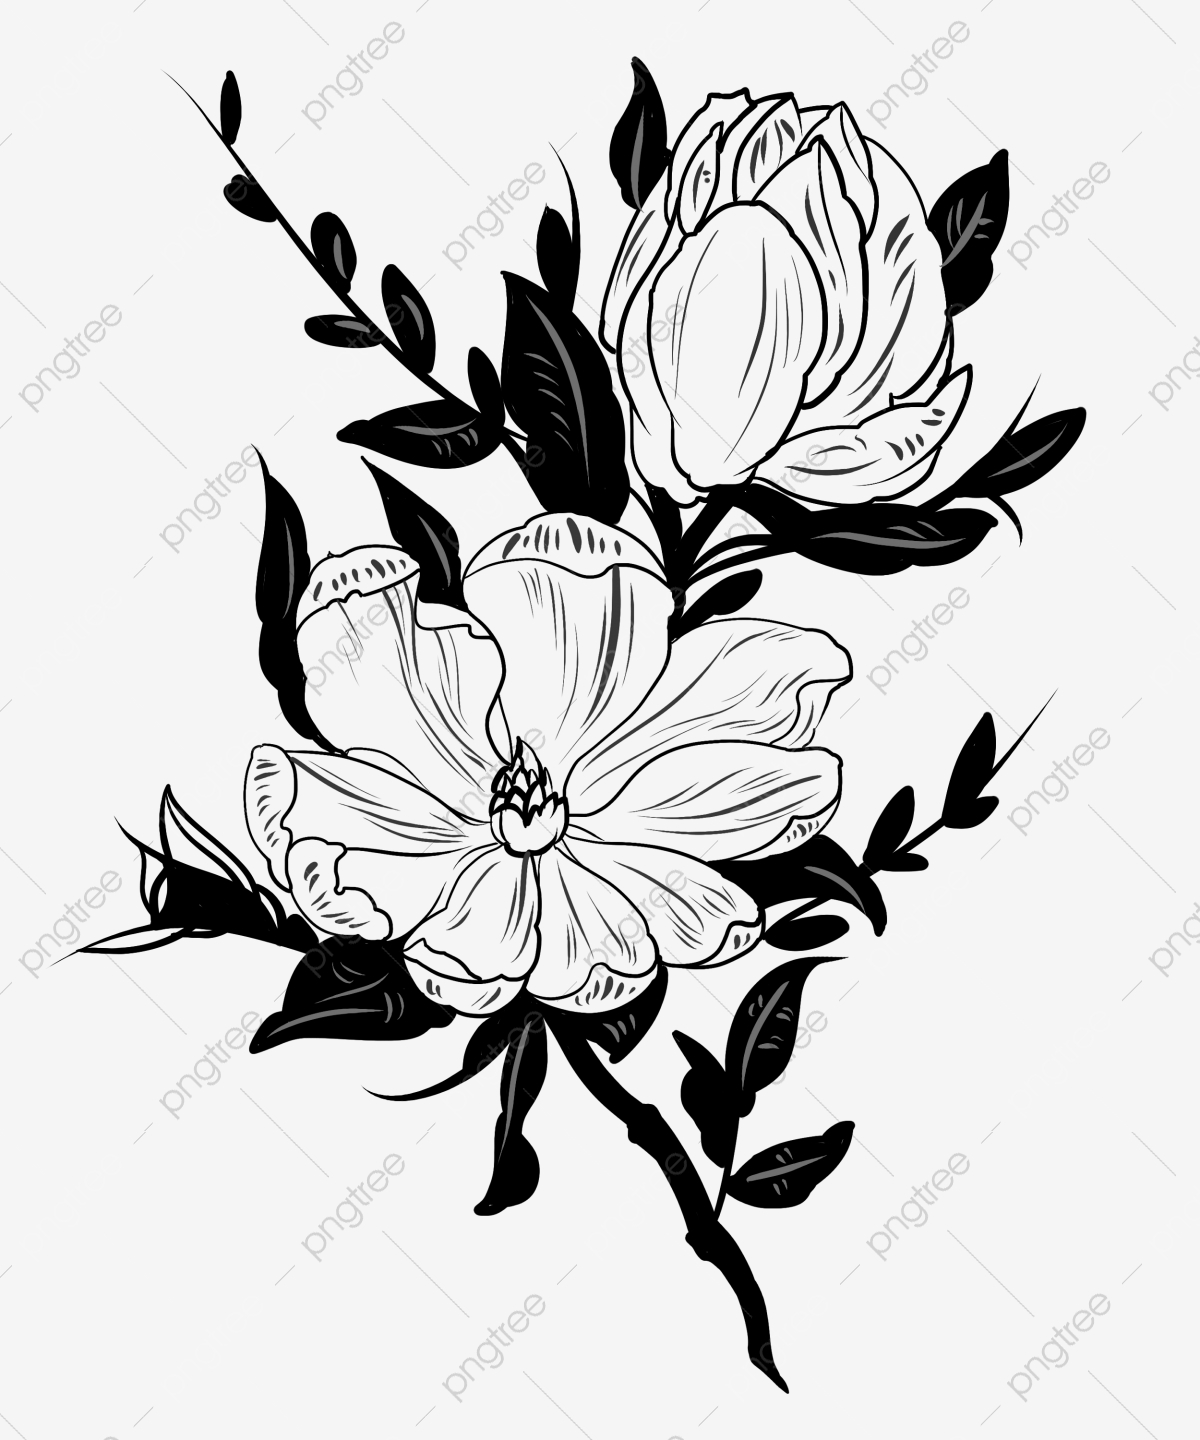 flower garden png images vector and psd files free download on pngtree https pngtree com freepng black flower garden illustration 4548408 html